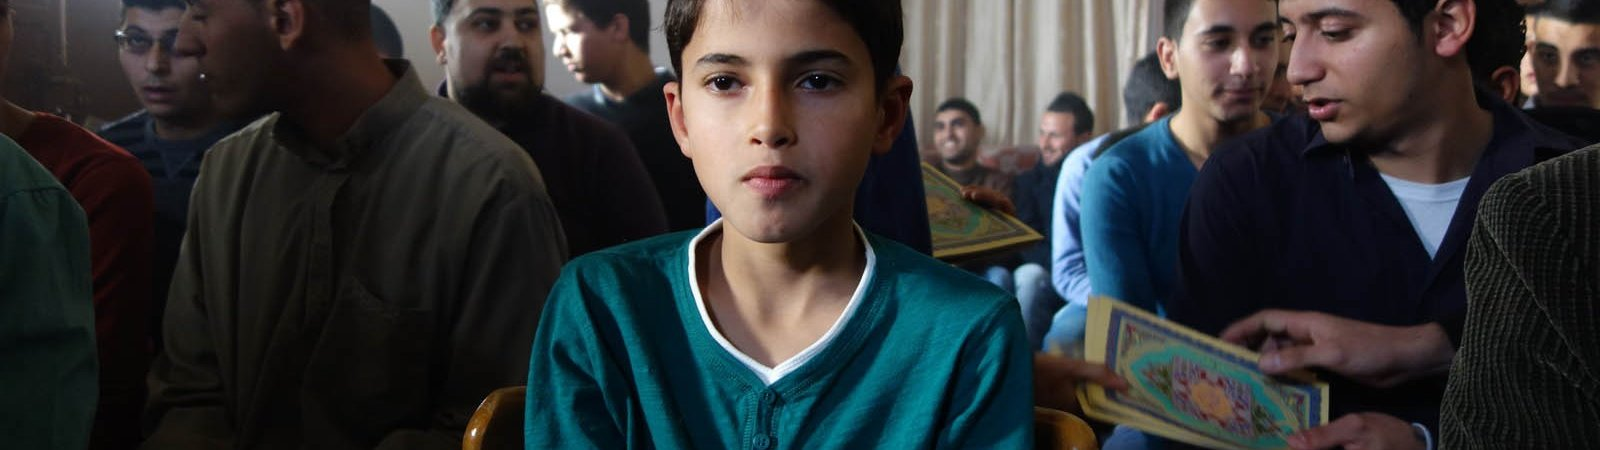 Photo du film : Le chanteur de Gaza